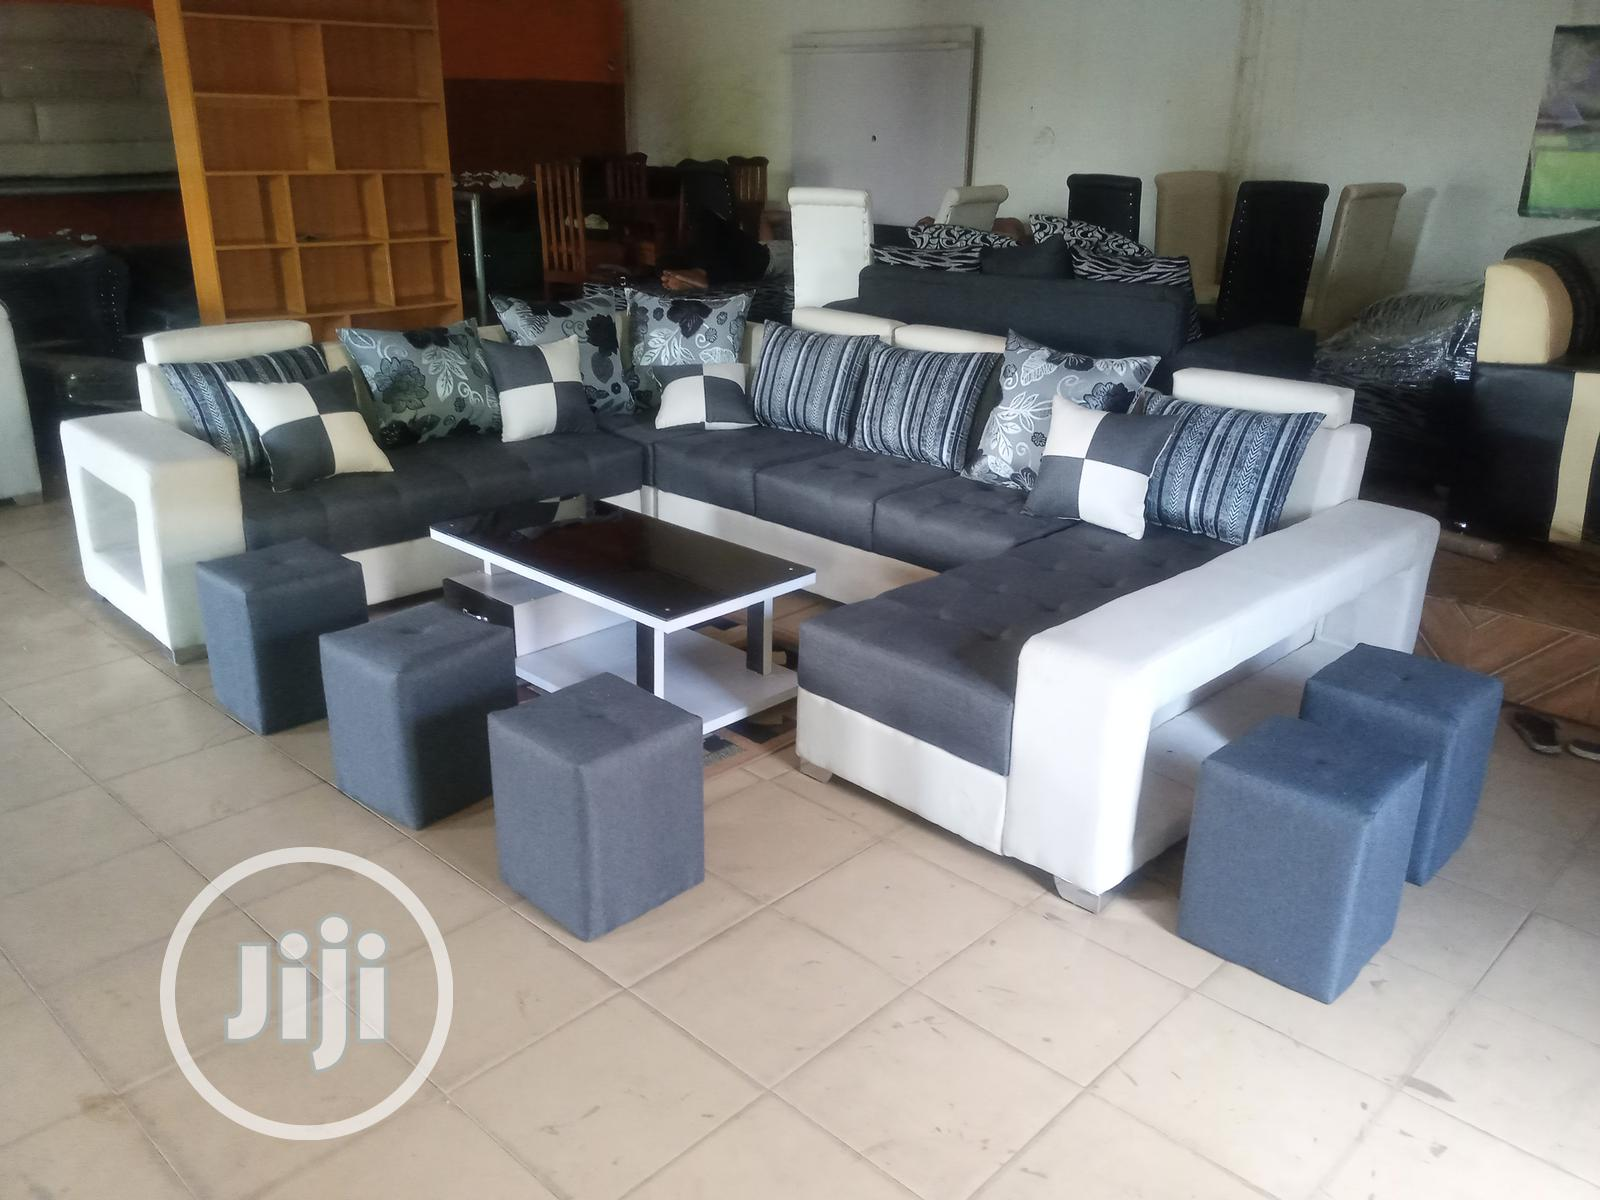 U-Shaped Sofa Chairs With Table and Stools. Fabric Couches